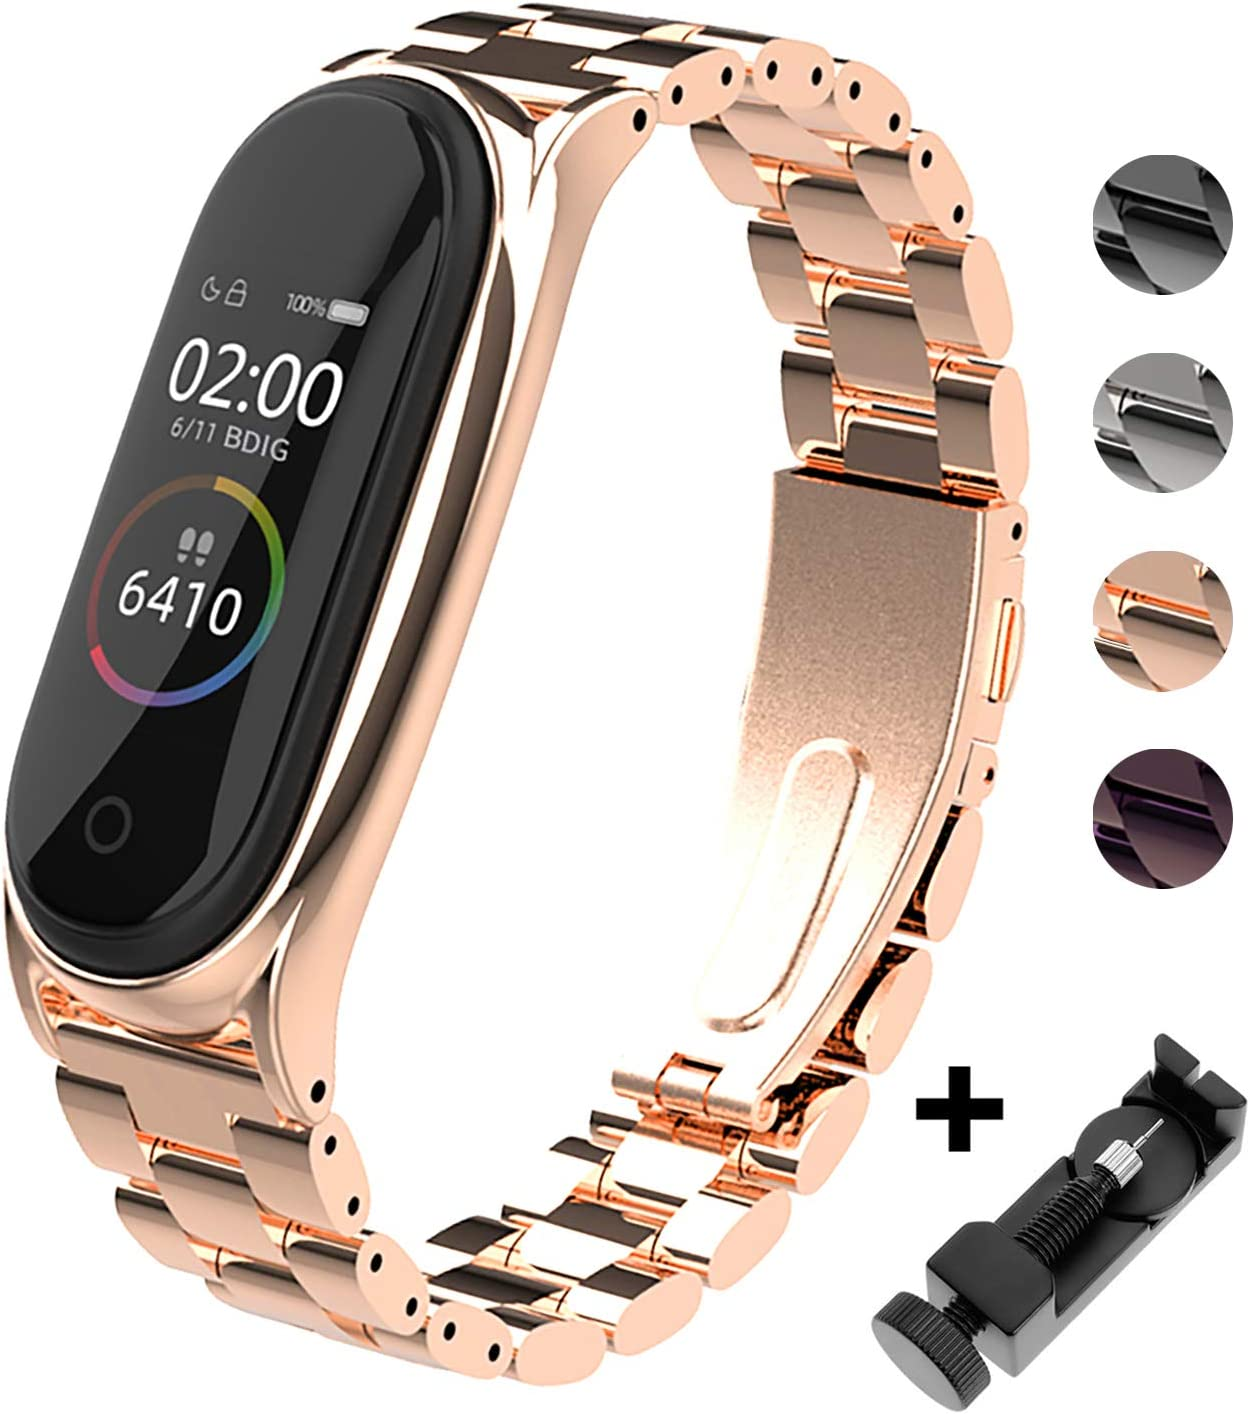 BDIG Correa Compatible Xiaomi Mi Band 4 Correas Metal,Pulsera de Acero Inoxidable Agradable para Mi Band 4 Correa (No Host)(Plus Oro Rosa)